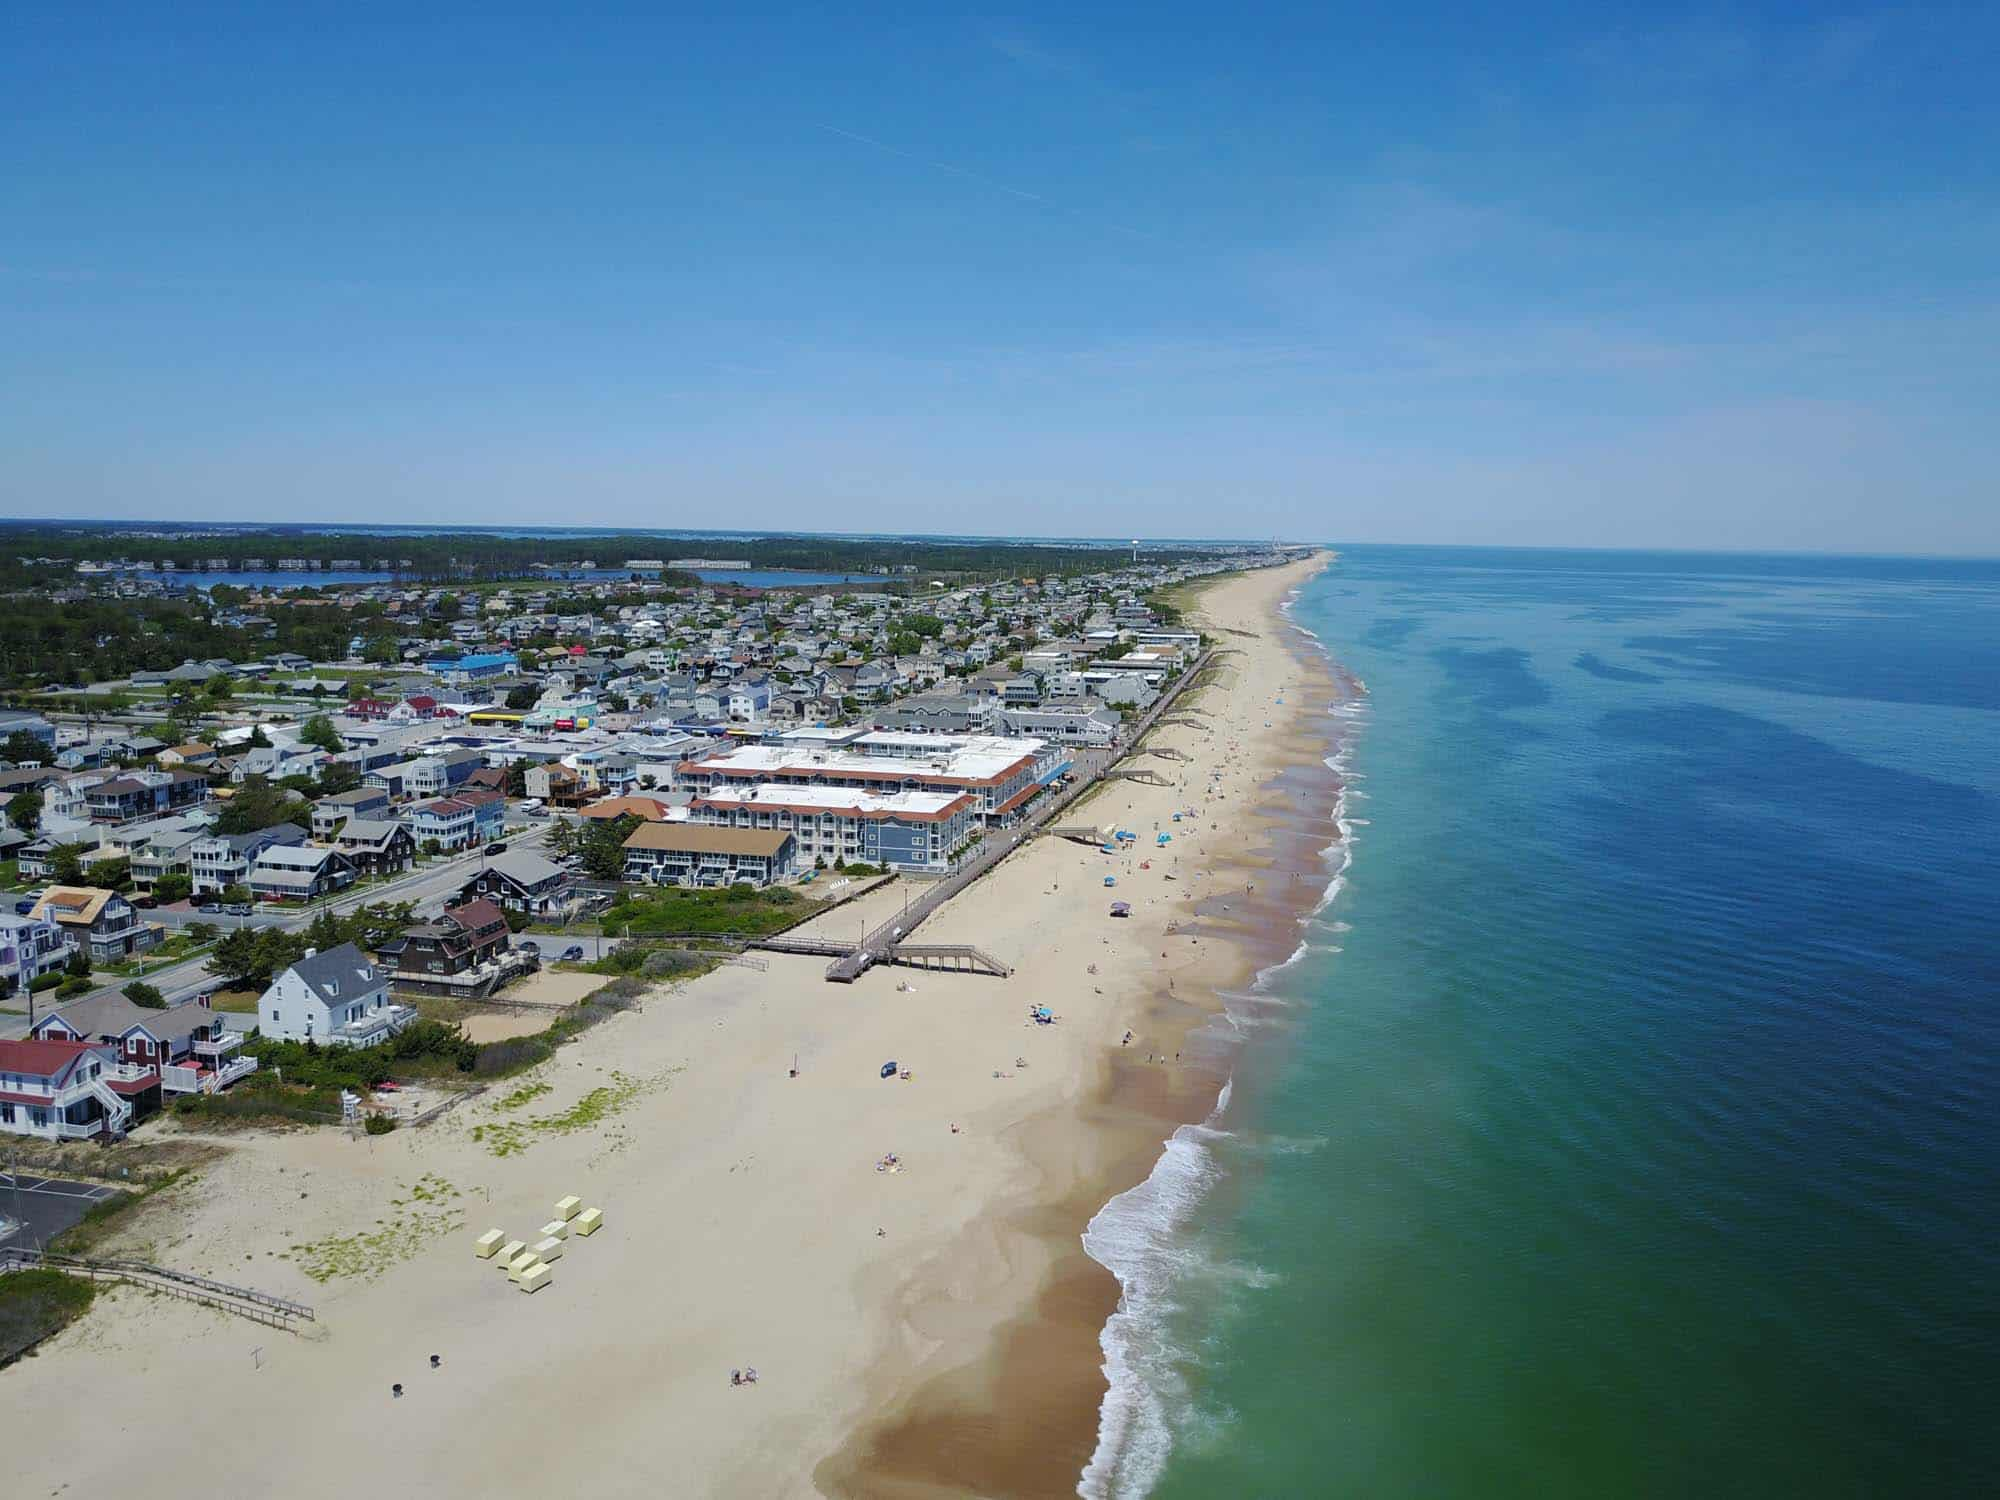 Aeriel photo of beach and town